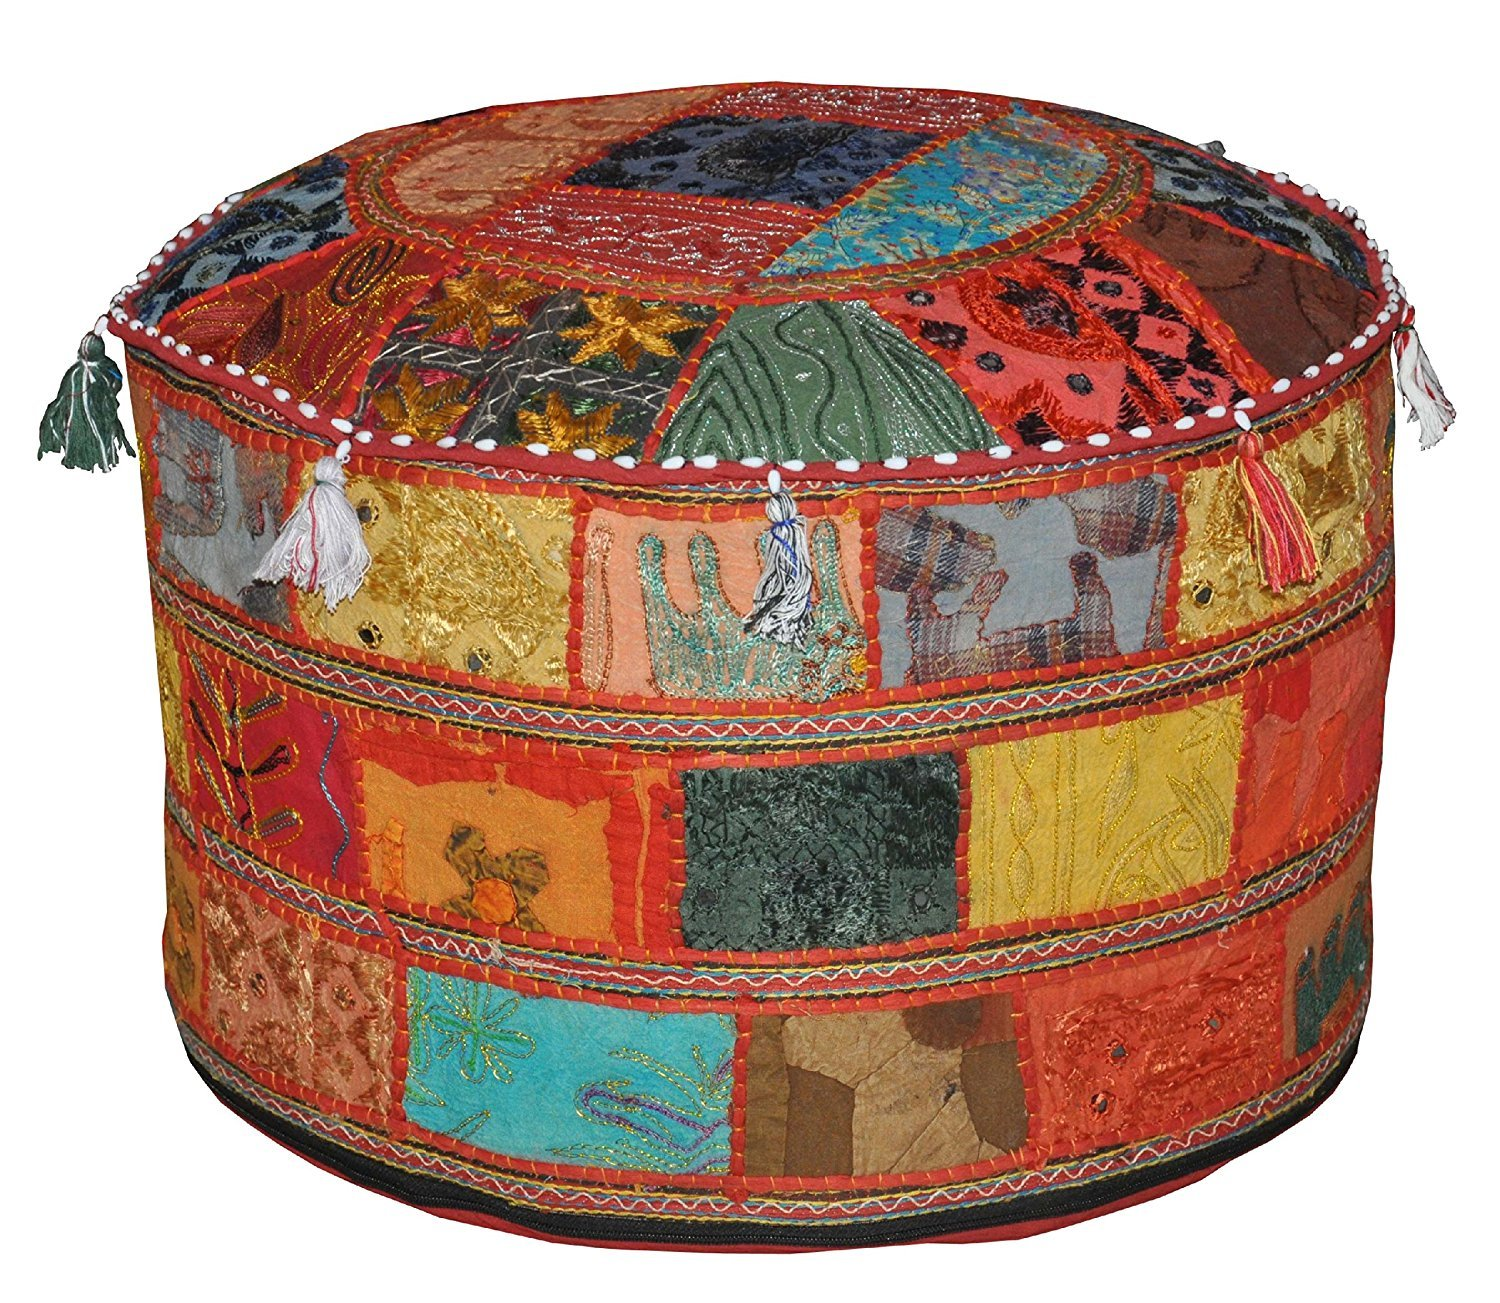 """Indian Living Room Pouf, Foot Stool, Round Ottoman Cover Pouf,Traditional Handmade Decorative Patchwork Ottoman Cover,Indian Home Decor Cotton Cushion Ottoman Cover 22x15""""inches"""